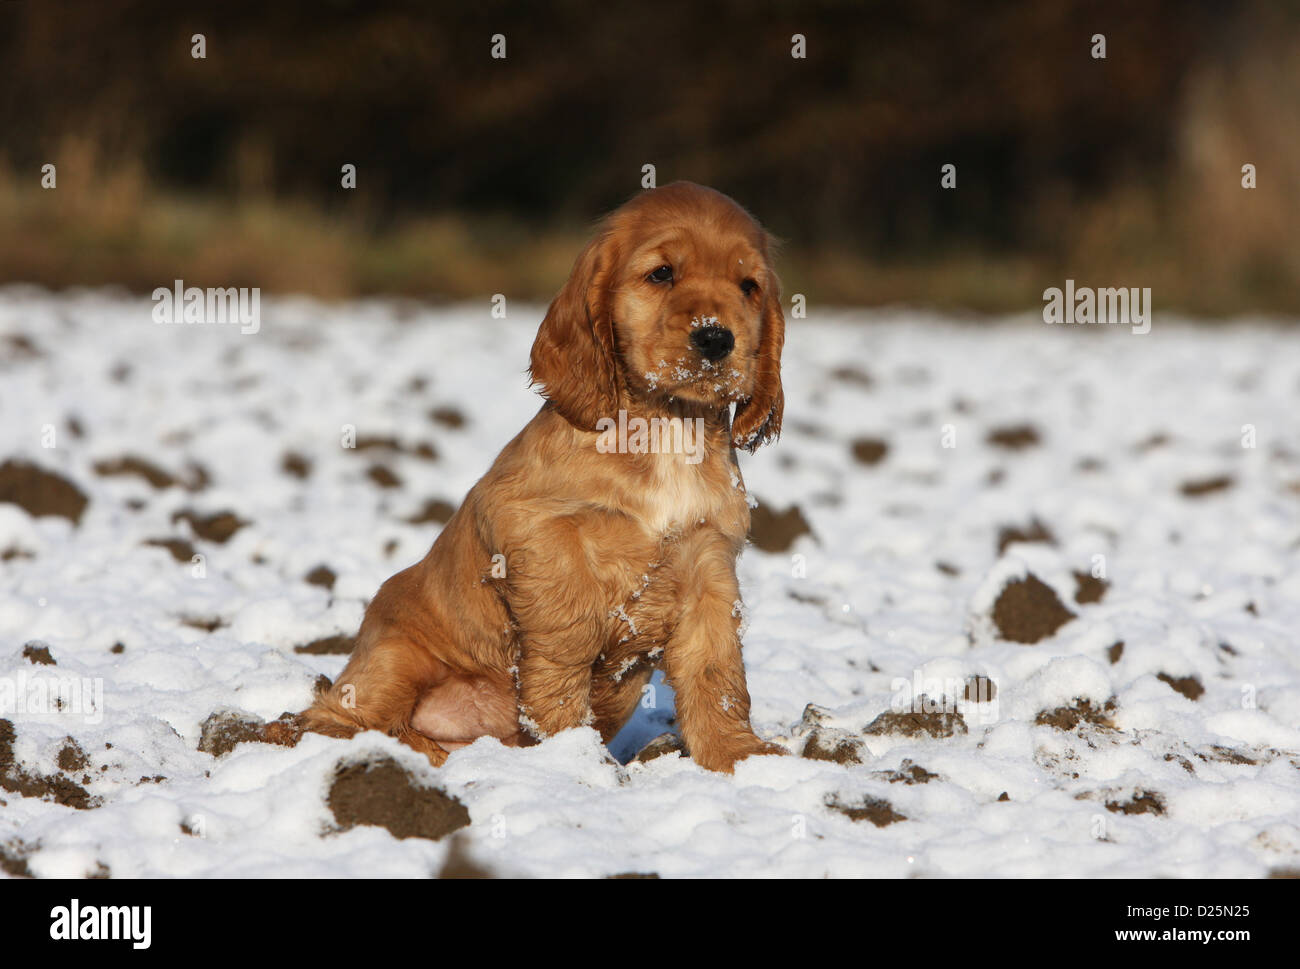 Dog English Cocker Spaniel Puppy Red Sitting In Snow Stock Photo Alamy